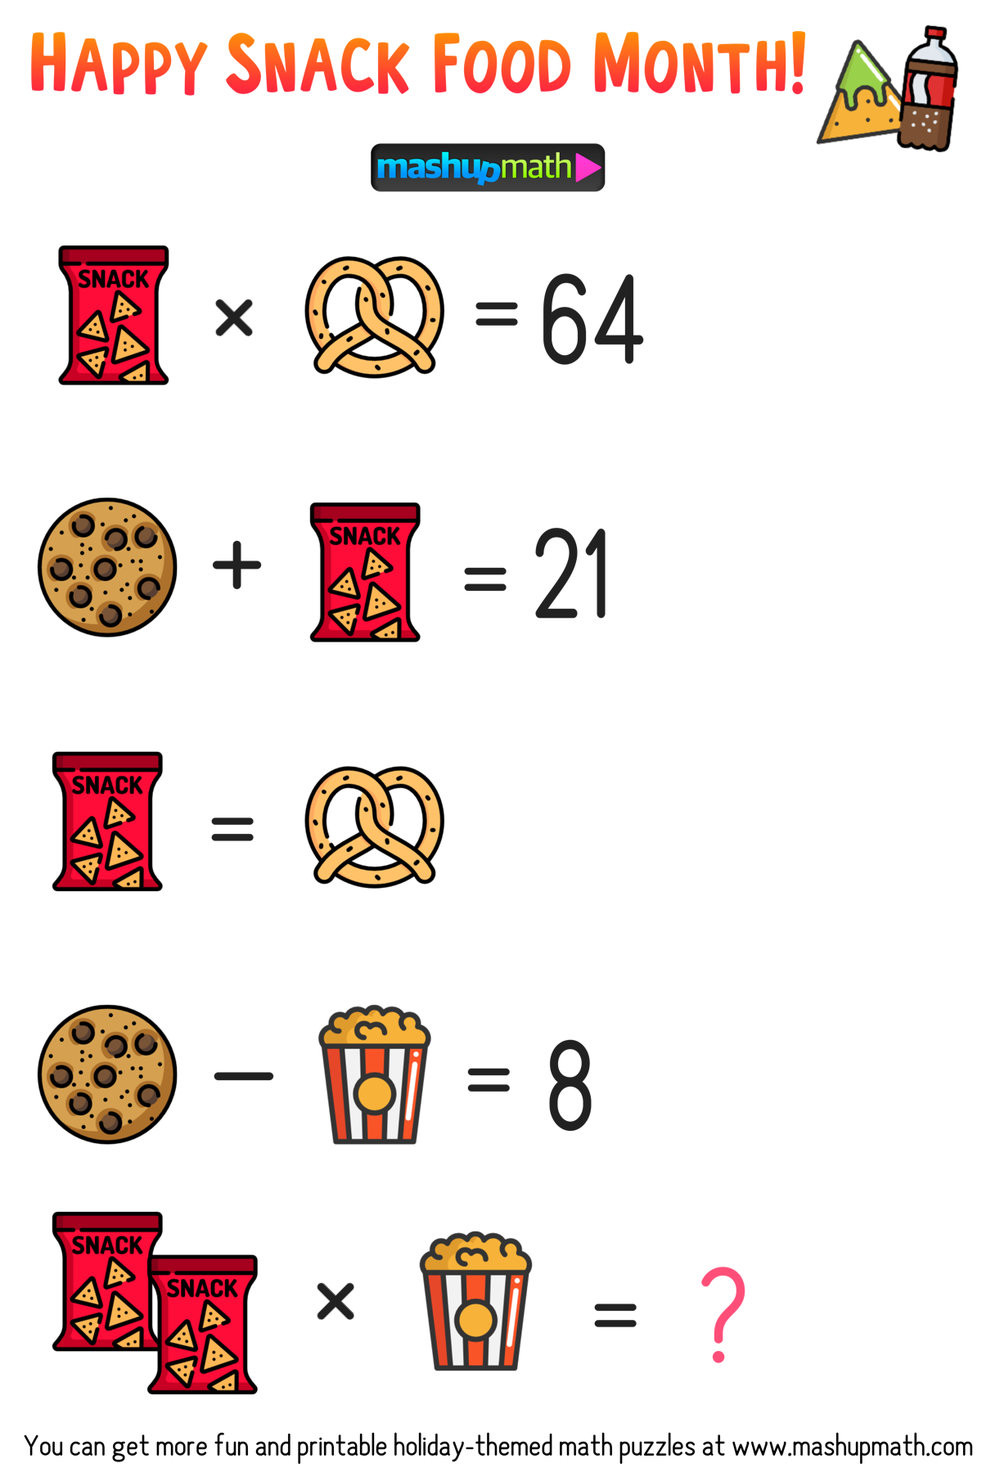 6th Grade Math Puzzles Pdf Free Math Brain Teaser Puzzles for Kids In Grades 1 6 to